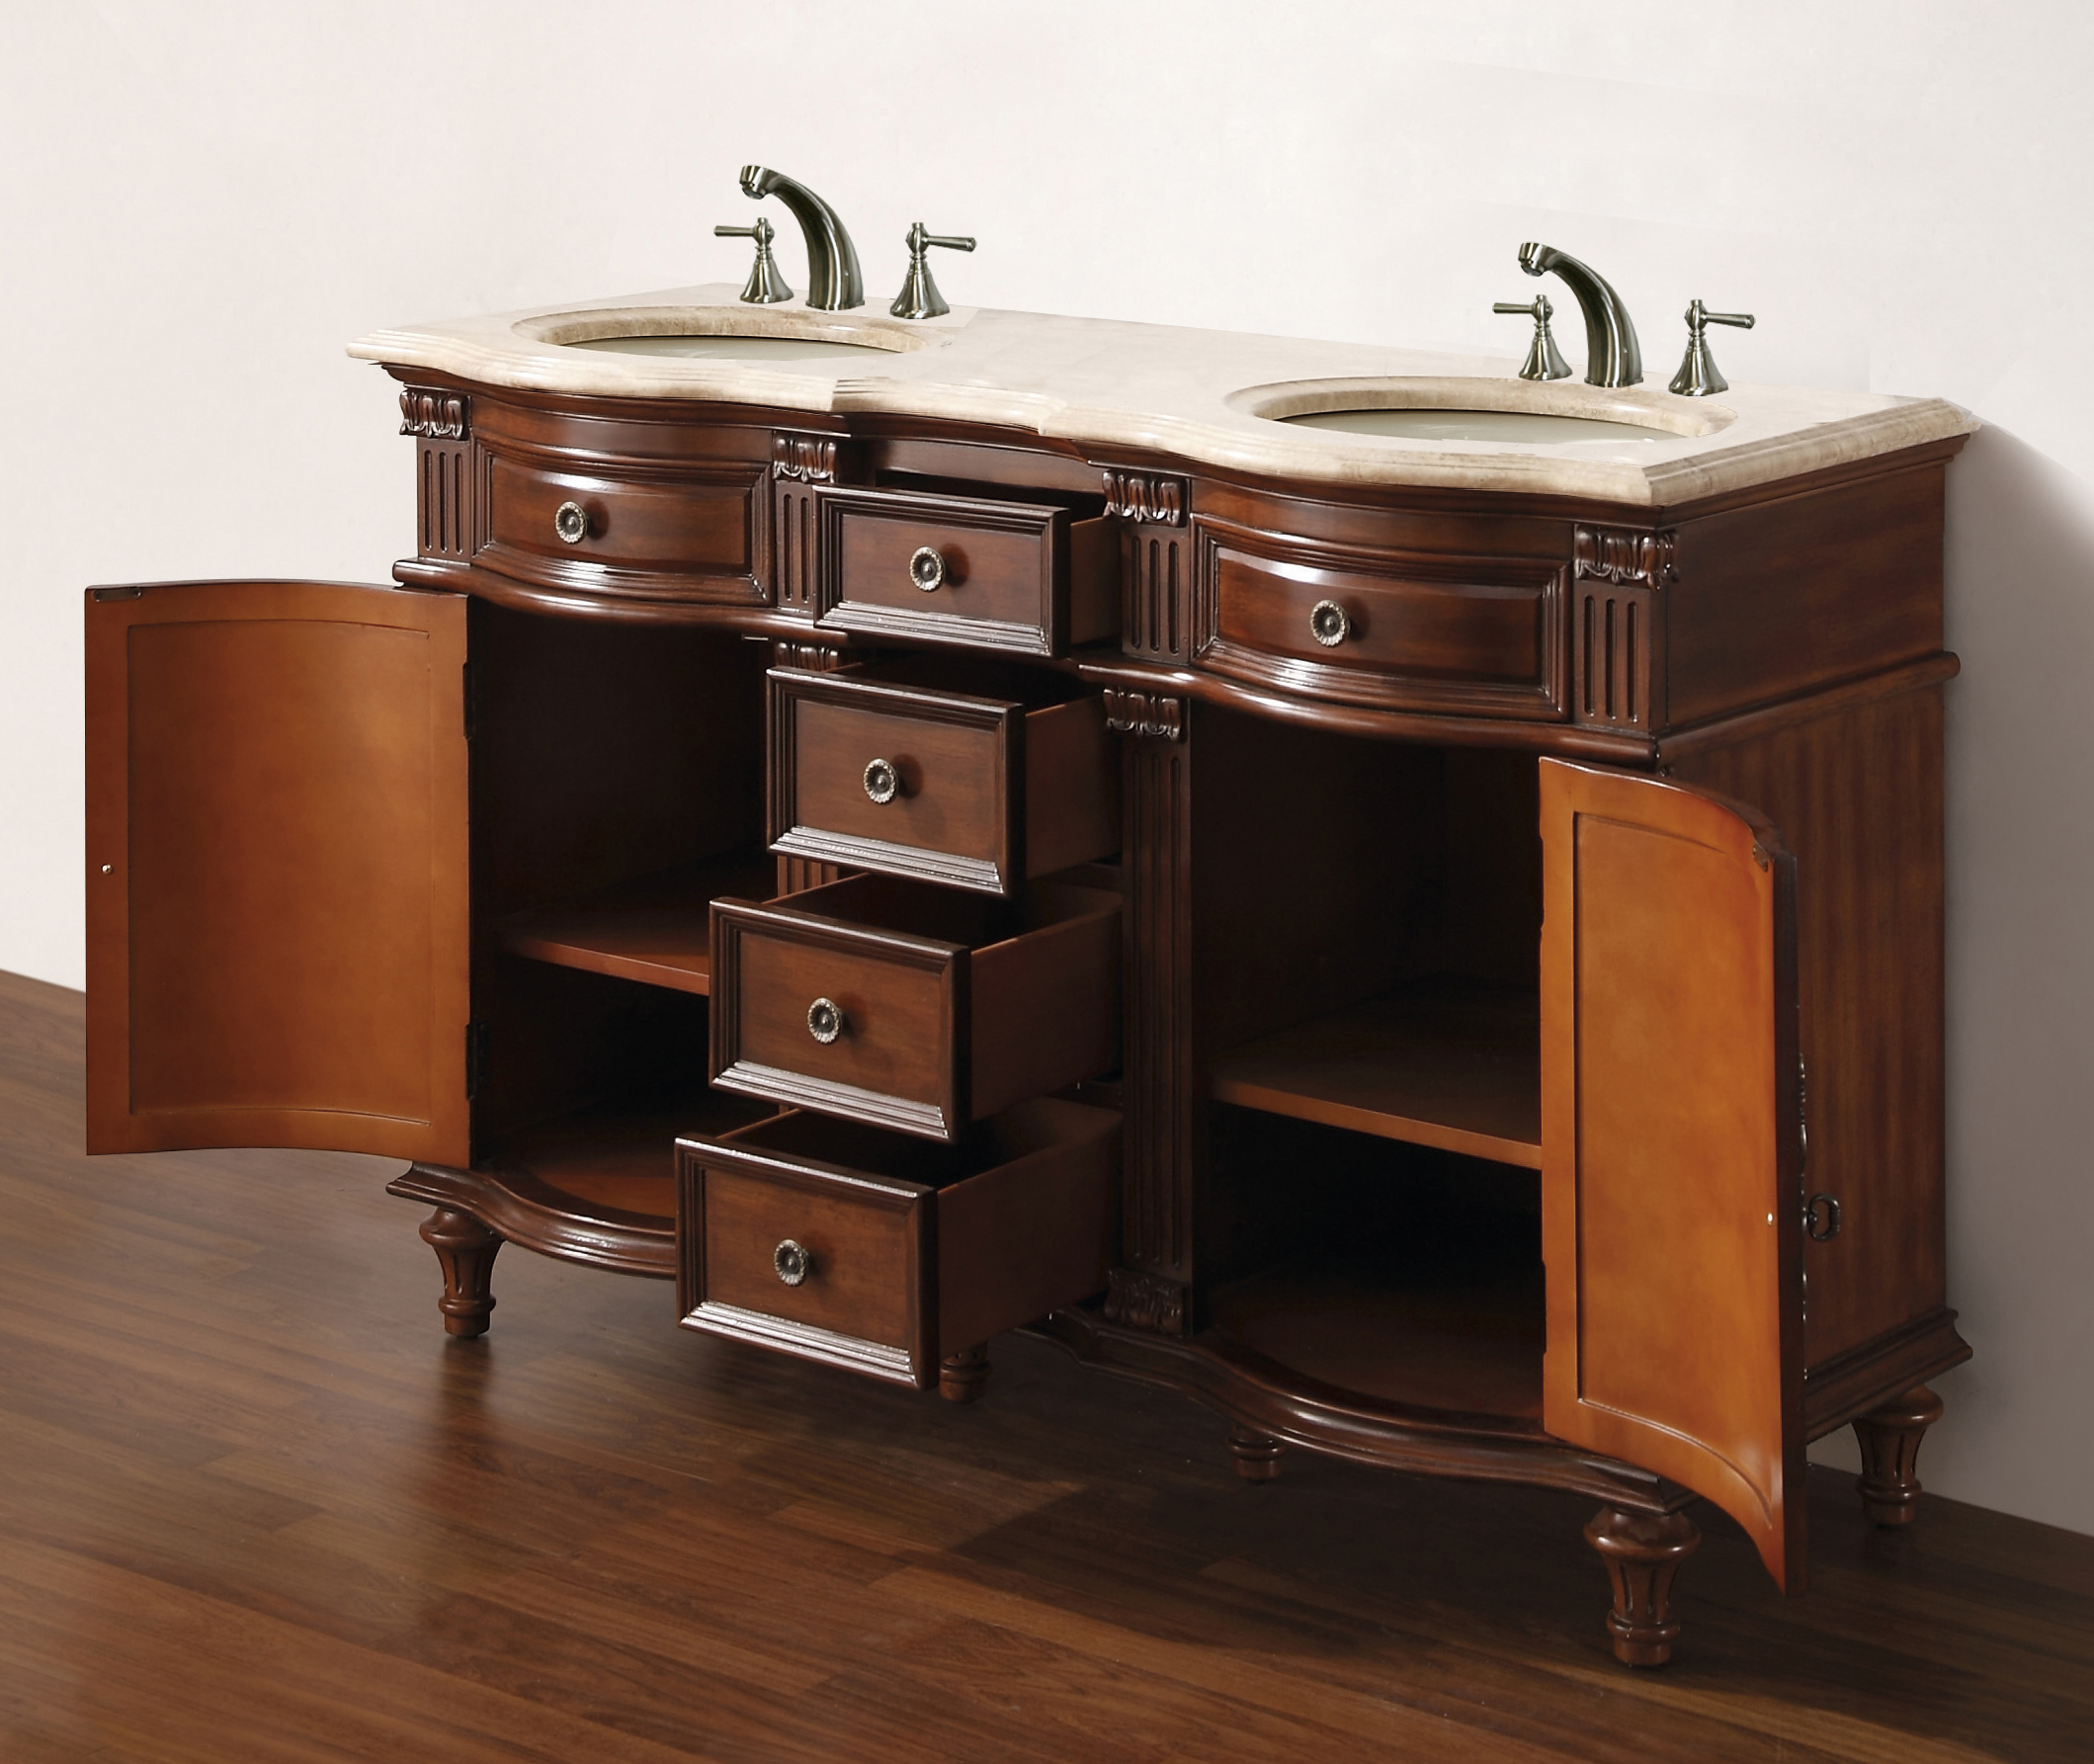 Bathroom Vanities For Sale 55inch norwalk vanity | special vanity sale | bathroom vanity sale